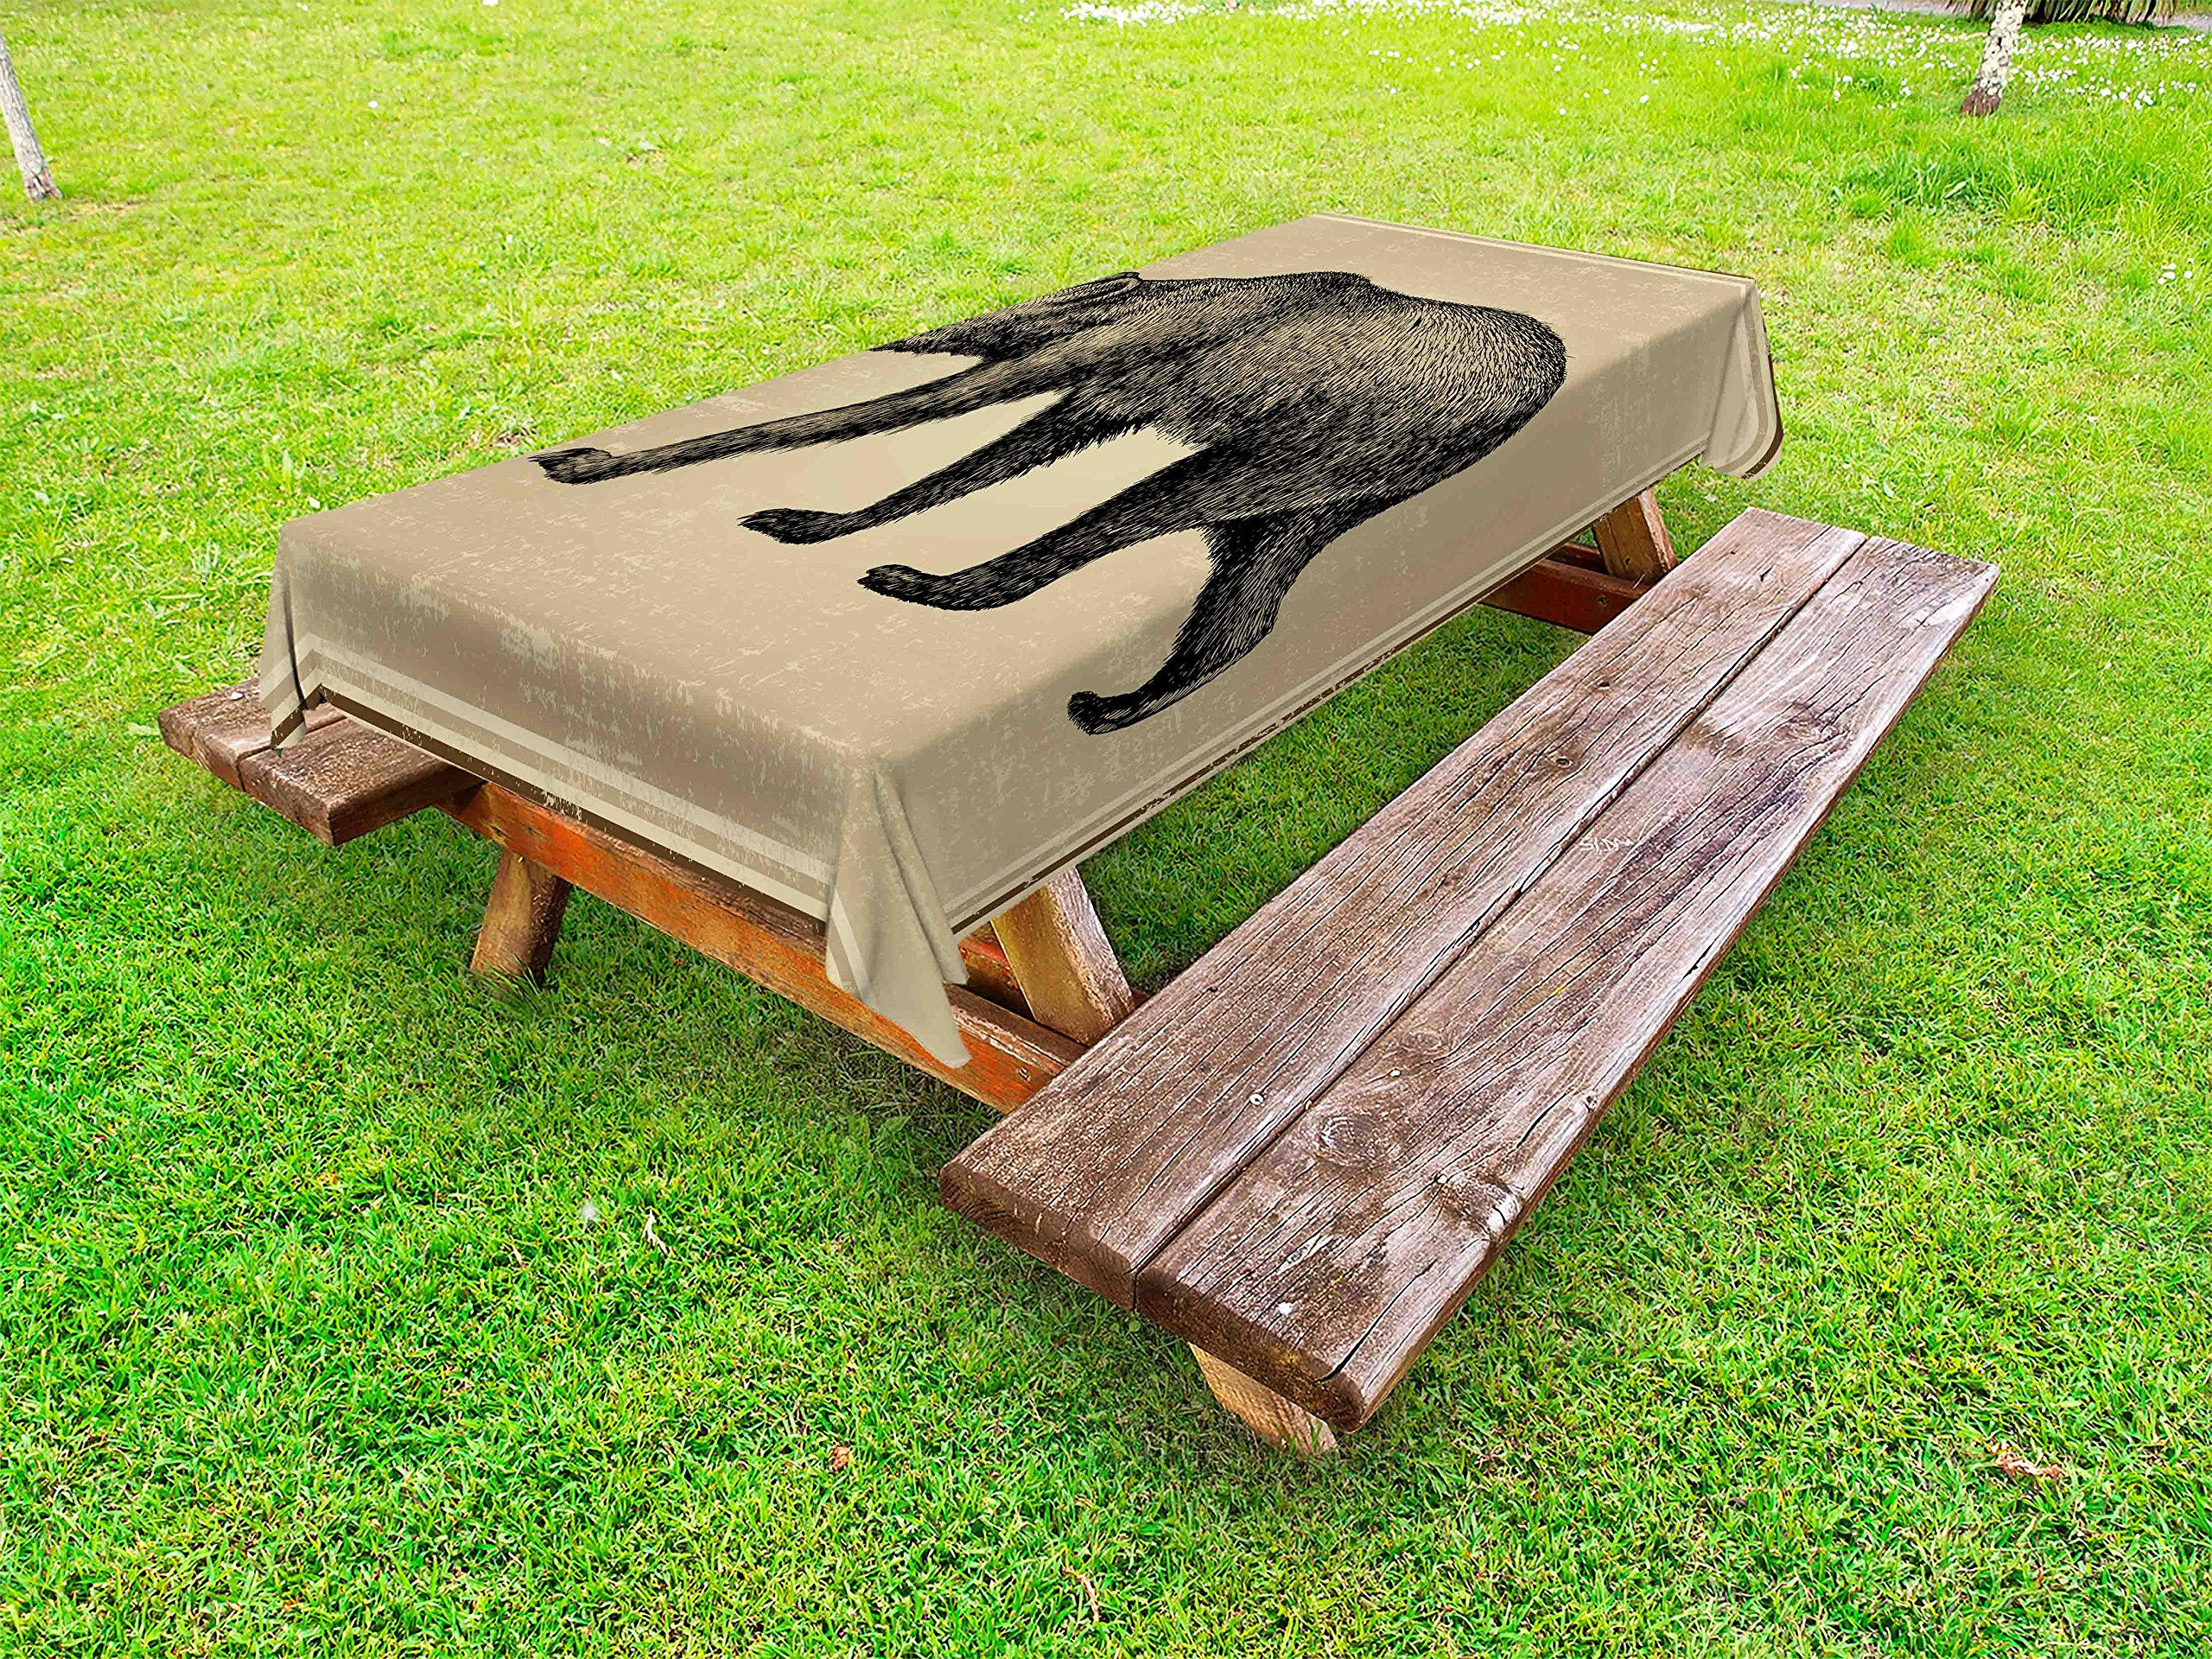 Lunarable Cabin Outdoor Tablecloth, Vintage Style Framework with Wild Animal Bear Hand Drawing Carnivore Sketch Art, Decorative Washable Picnic Table Cloth, 58 X 84 inches, Tan and Black